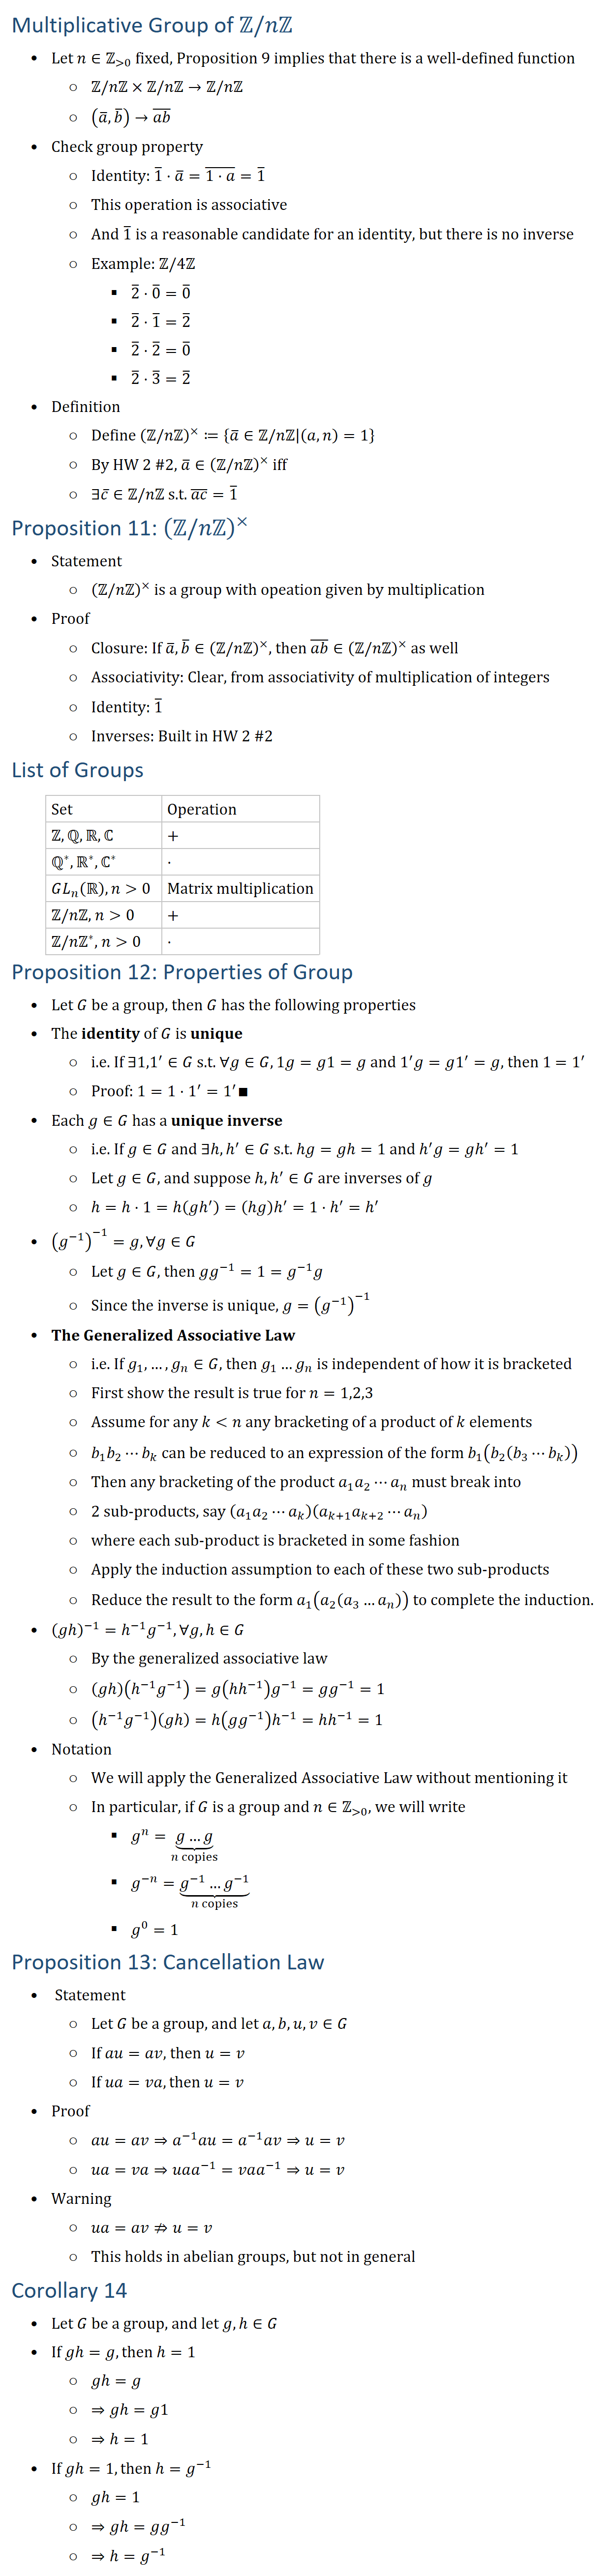 Multiplicative Group of Z\/nZ • Let n∈Z( 0) fixed, Proposition 9 implies that there is a well-defined function ○ Z\/nZ×Z\/nZ→Z\/nZ ○ (a ̅,b ̅ )→(ab) ̅ • Check group property ○ Identity: 1 ̅⋅a ̅=(1⋅a) ̅=1 ̅ ○ This operation is associative ○ And 1 ̅ is a reasonable candidate for an identity, but there is no inverse ○ Example: Z\/4Z § 2 ̅⋅0 ̅=0 ̅ § 2 ̅⋅1 ̅=2 ̅ § 2 ̅⋅2 ̅=0 ̅ § 2 ̅⋅3 ̅=2 ̅ • Definition ○ Define (ZnZ^×≔{a ̅∈ZnZ(a,n)=1} ○ By HW 2 #2, a ̅∈(ZnZ^× iff ○ ∃c ̅∈Z\/nZ s.t. (ac) ̅=1 ̅ Proposition 11: (ZnZ^× • Statement ○ (ZnZ^× is a group with opeation given by multiplication • Proof ○ Closure: If a ̅,b ̅∈(ZnZ^×, then (ab) ̅∈(ZnZ^× as well ○ Associativity: Clear, from associativity of multiplication of integers ○ Identity: 1 ̅ ○ Inverses: Built in HW 2 #2 List of Groups Set Operation Z,Q,R,ℂ + Q∗,R∗,ℂ^∗ ⋅ GL_n (R, n 0 Matrix multiplication Z\/nZ, n 0 + 〖Z/nZ^∗, n 0 ⋅ Proposition 12: Properties of Group • Let G be a group, then G has the following properties • The identity of G is unique ○ i.e. If ∃〖1,1〗^′∈G s.t. ∀g∈G,1g=g1=g and 1^′ g=g1^′=g, then 1 =1^′ ○ Proof: 1=1⋅1^′=1^′∎ • Each g∈G has a unique inverse ○ i.e. If g∈G and ∃h,h′∈G s.t. hg=gh=1 and h′ g=gh′=1 ○ Let g∈G, and suppose h,h′∈G are inverses of g ○ h=h⋅1=h(gh′ )=(h�) h′=1⋅h′=h′ • (g^(−1) )^(−1)=g, ∀g∈G ○ Let g∈G, then gg^(−1)=1=g^(−1) g ○ Since the inverse is unique, g=(g^(−1) )^(−1) • The Generalized Associative Law ○ i.e. If g_1,…,g_n∈G, then g_1…g_n is independent of how it is bracketed ○ First show the result is true for n=1,2,3 ○ Assume for any k n any bracketing of a product of k elements ○ b_1 b_2⋯b_k can be reduced to an expression of the form b_1 (b_2 (b_3⋯b_k )) ○ Then any bracketing of the product a_1 a_2⋯a_n must break into ○ 2 sub-products, say (a_1 a_2⋯a_k )(a_(k+1) a_(k+2)⋯a_n ) ○ where each sub-product is bracketed in some fashion ○ Apply the induction assumption to each of these two sub-products ○ Reduce the result to the form a_1 (a_2 (a_3…a_n )) to complete the induction. • (gh^(−1)=h(−1) g^(−1), ∀g,h∈G ○ By the generalized associative law ○ (gh(h(−1) g^(−1) )=g(h^(−1) ) g^(−1)=gg^(−1)=1 ○ (h(−1) g^(−1) )(gh=h(gg^(−1) ) h(−1)=hh(−1)=1 • Notation ○ We will apply the Generalized Associative Law without mentioning it ○ In particular, if G is a group and n∈Z( 0), we will write § g^n=⏟(g…g)┬(n copies) § g^(−n)=⏟(g^(−1)…g^(−1) )┬(n copies) § g^0=1 Proposition 13: Cancellation Law • Statement ○ Let G be a group, and let a,b,u,v∈G ○ If au=av, then u=v ○ If ua=va, then u=v • Proof ○ au=av⇒a^(−1) au=a^(−1) av⇒u=v ○ ua=va⇒uaa^(−1)=vaa^(−1)⇒u=v • Warning ○ ua=av⇏u=v ○ This holds in abelian groups, but not in general Corollary 14 • Let G be a group, and let g,h∈G • If gh=g,then h=1 ○ gh=g ○ ⇒gh=g1 ○ ⇒h=1 • If gh=1,then h=g^(−1) ○ gh=1 ○ ⇒gh=gg^(−1) ○ ⇒h=g^(−1)